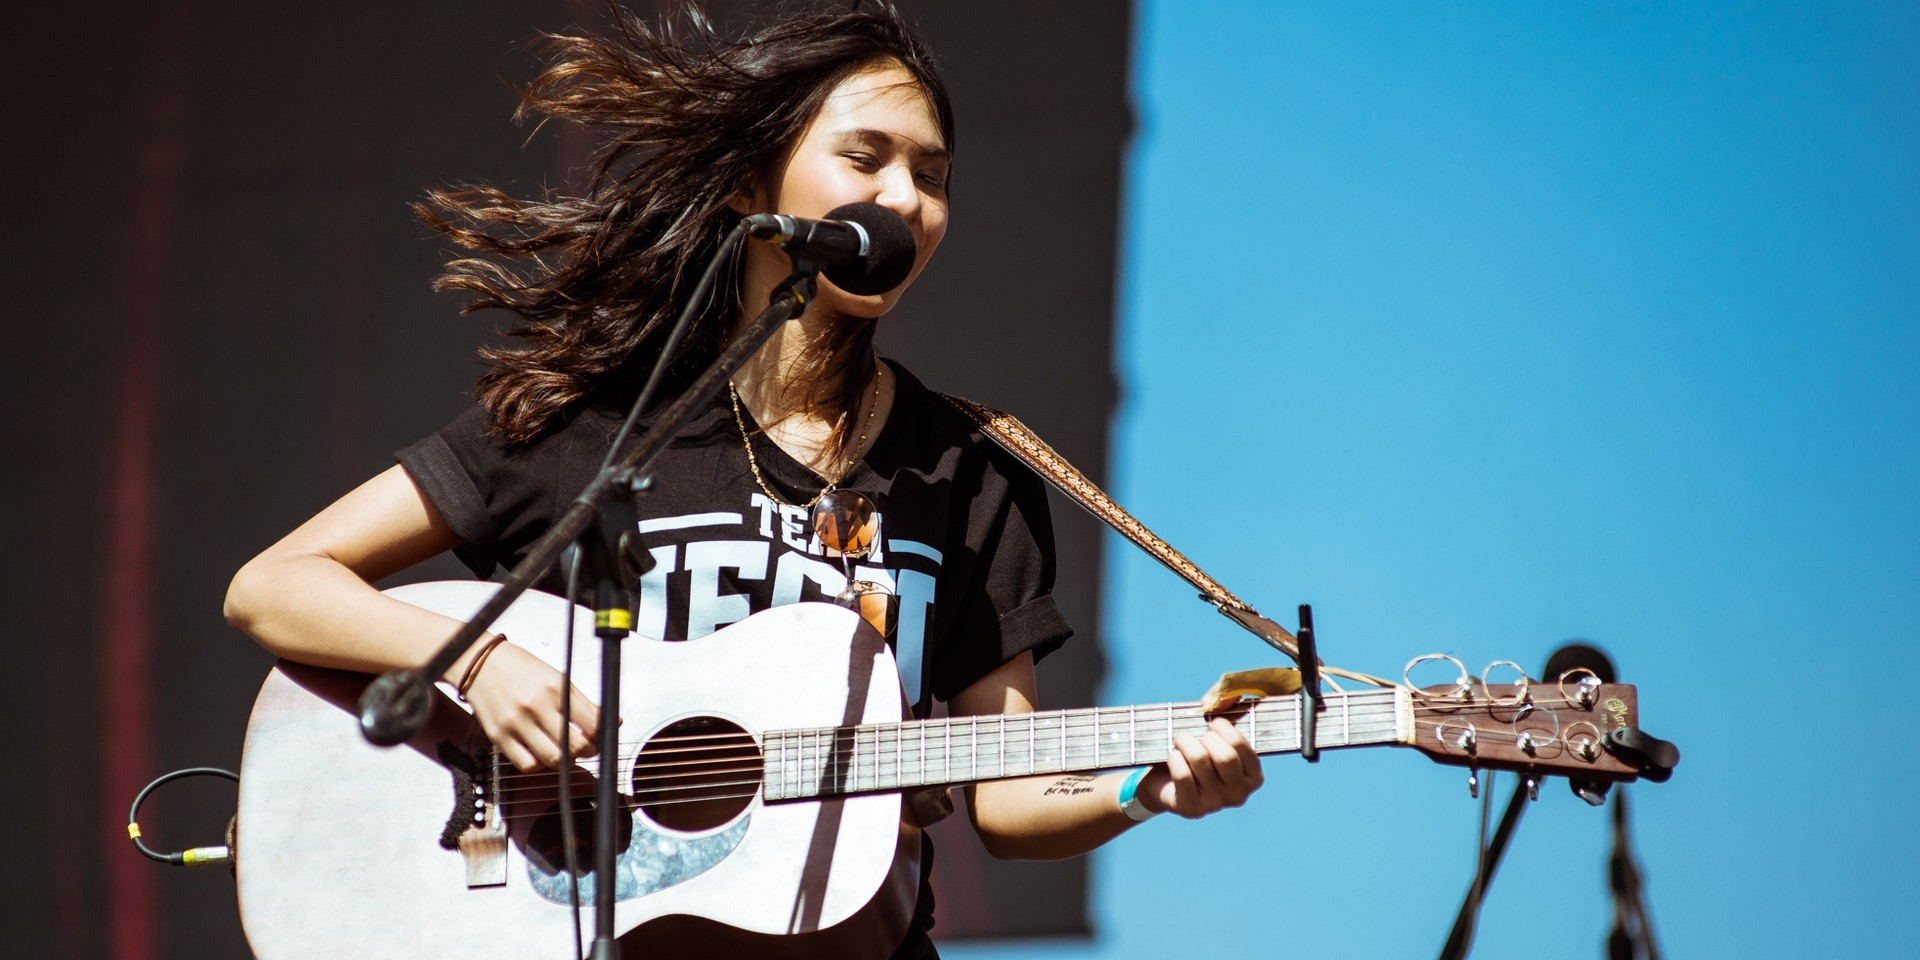 On the Record: The albums that shaped Clara Benin